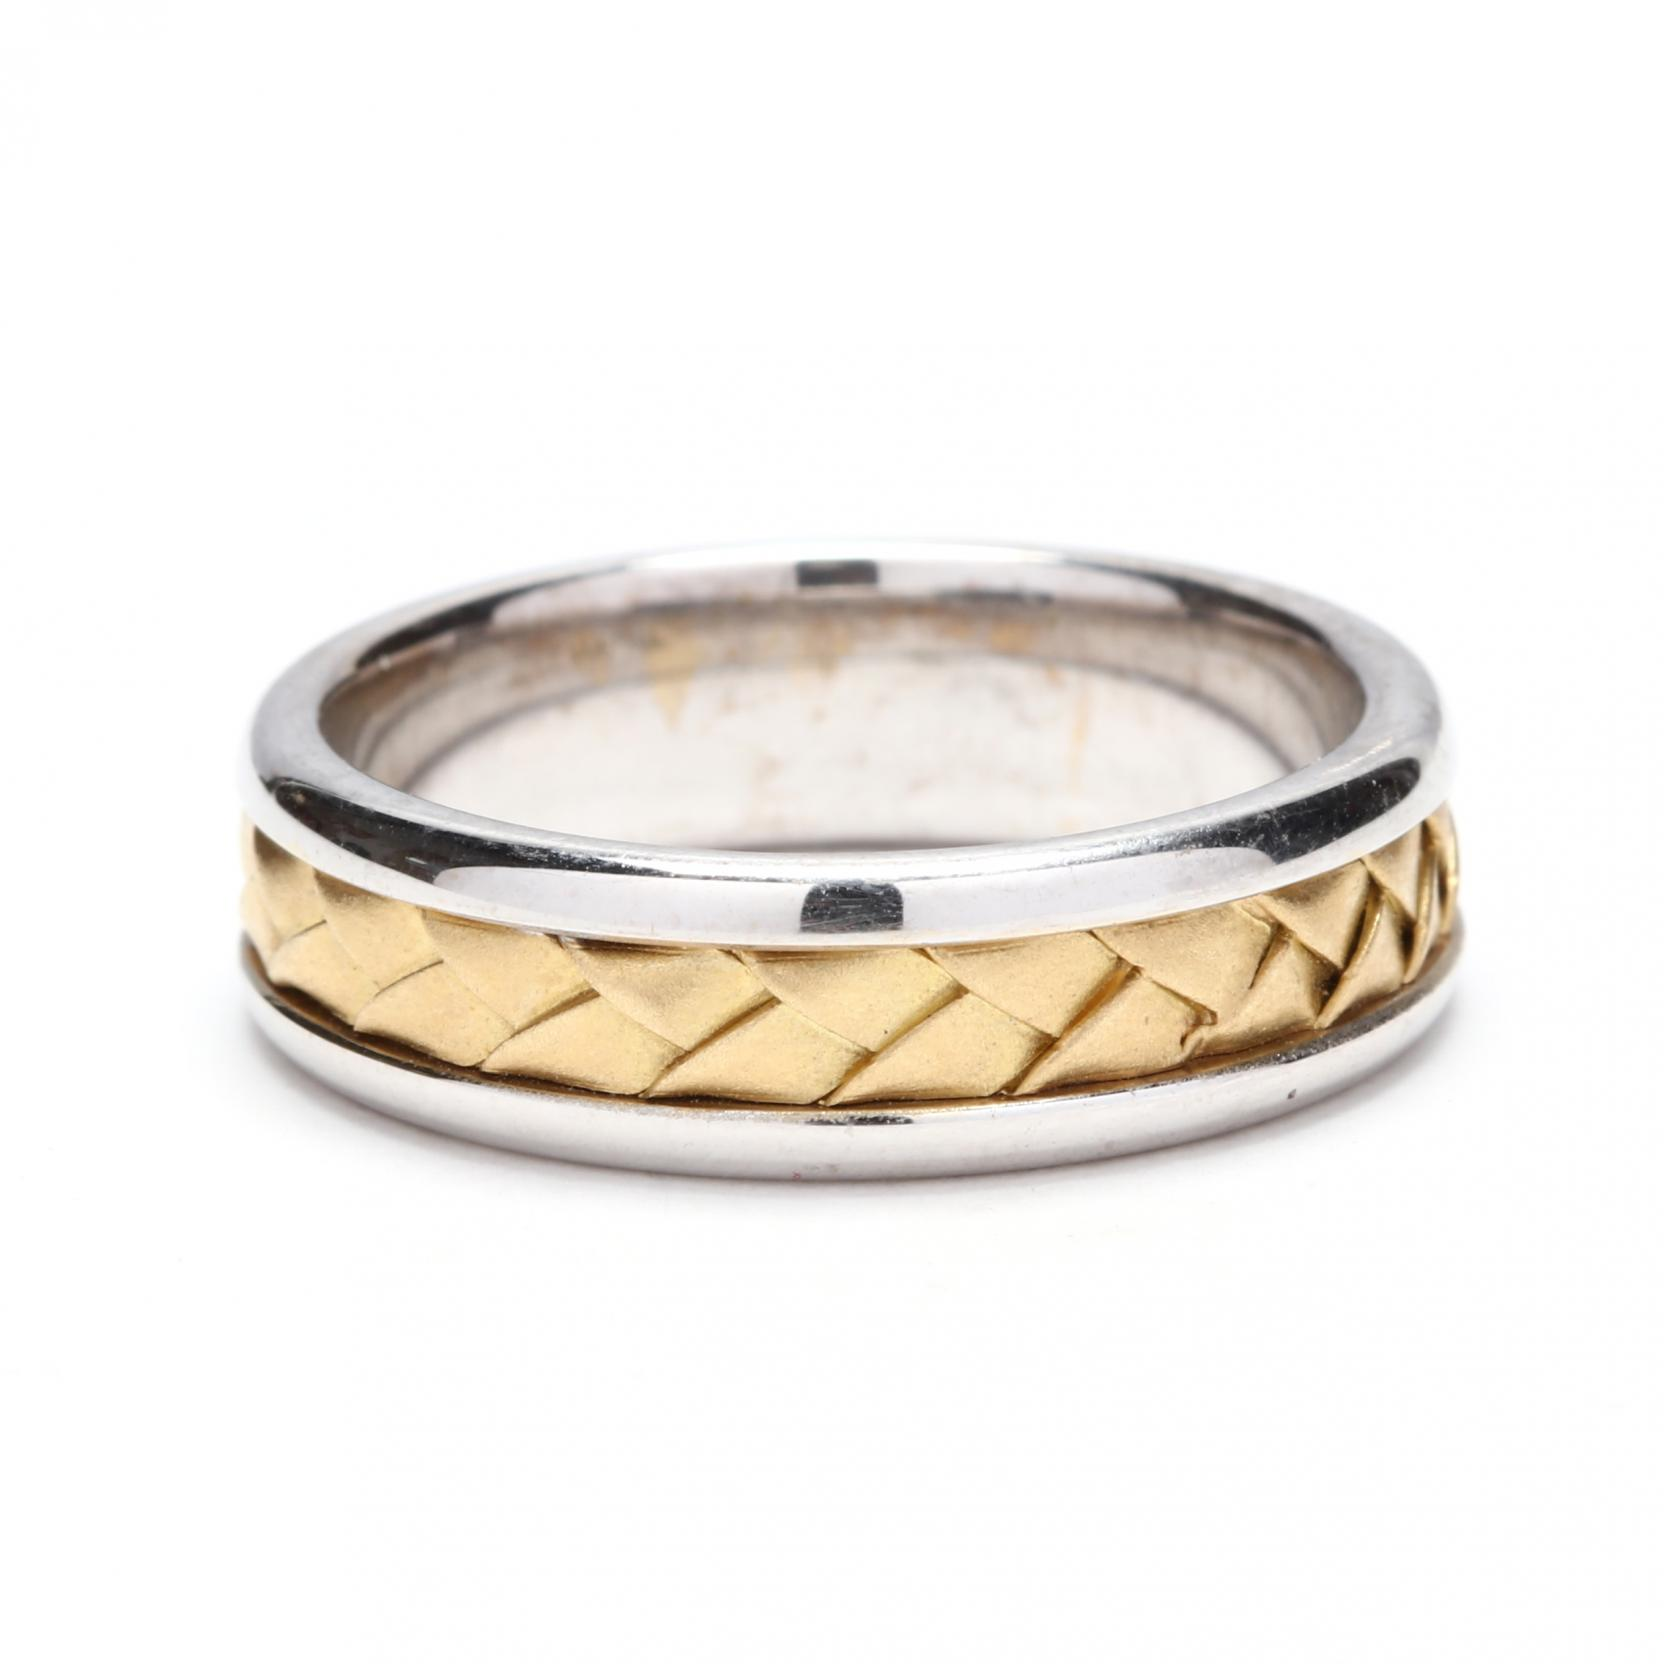 gent-s-18kt-two-color-gold-wedding-band